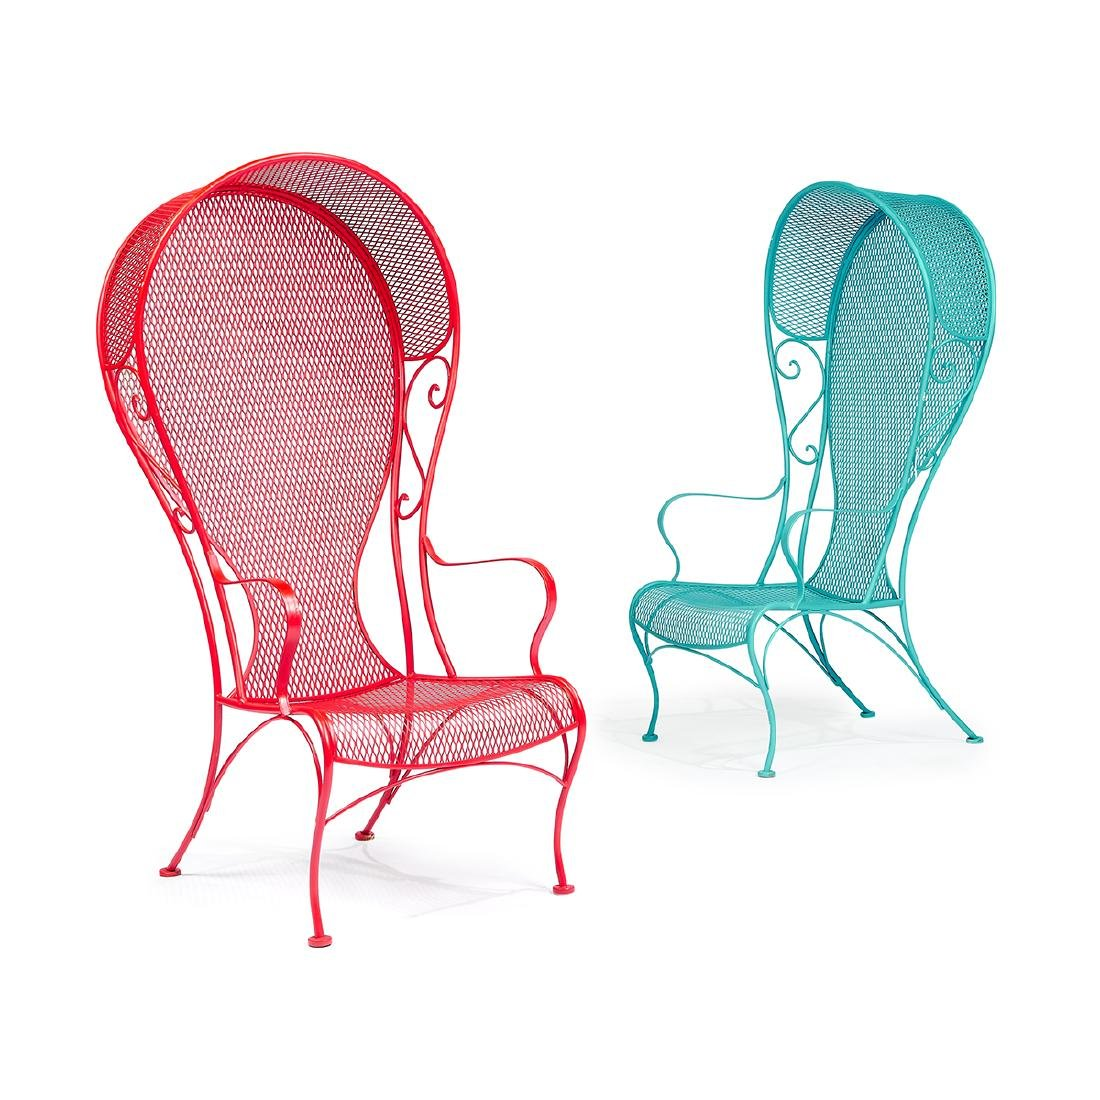 Woodard Furniture Co. Canopy chairs, two